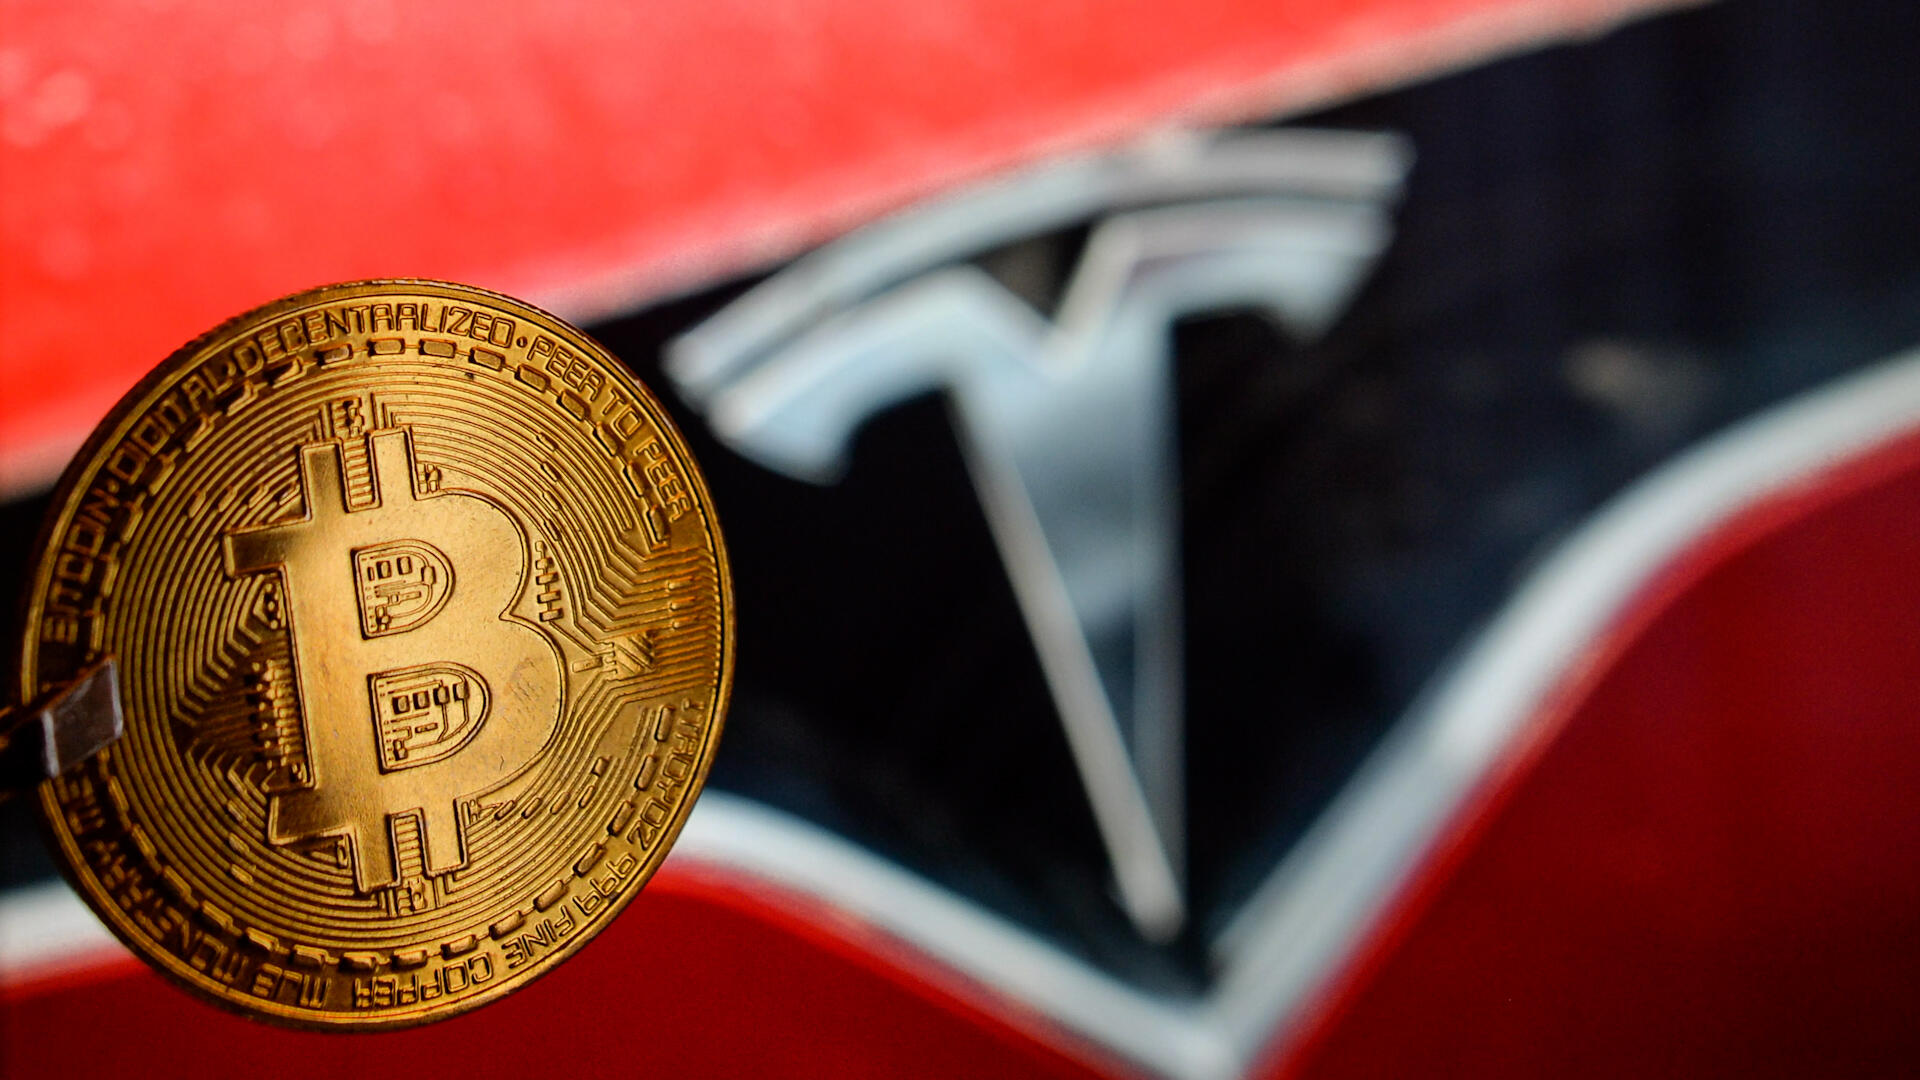 Video: Windows 10 support gets an end date, Musk says Tesla will eventually accept clean energy Bitcoin